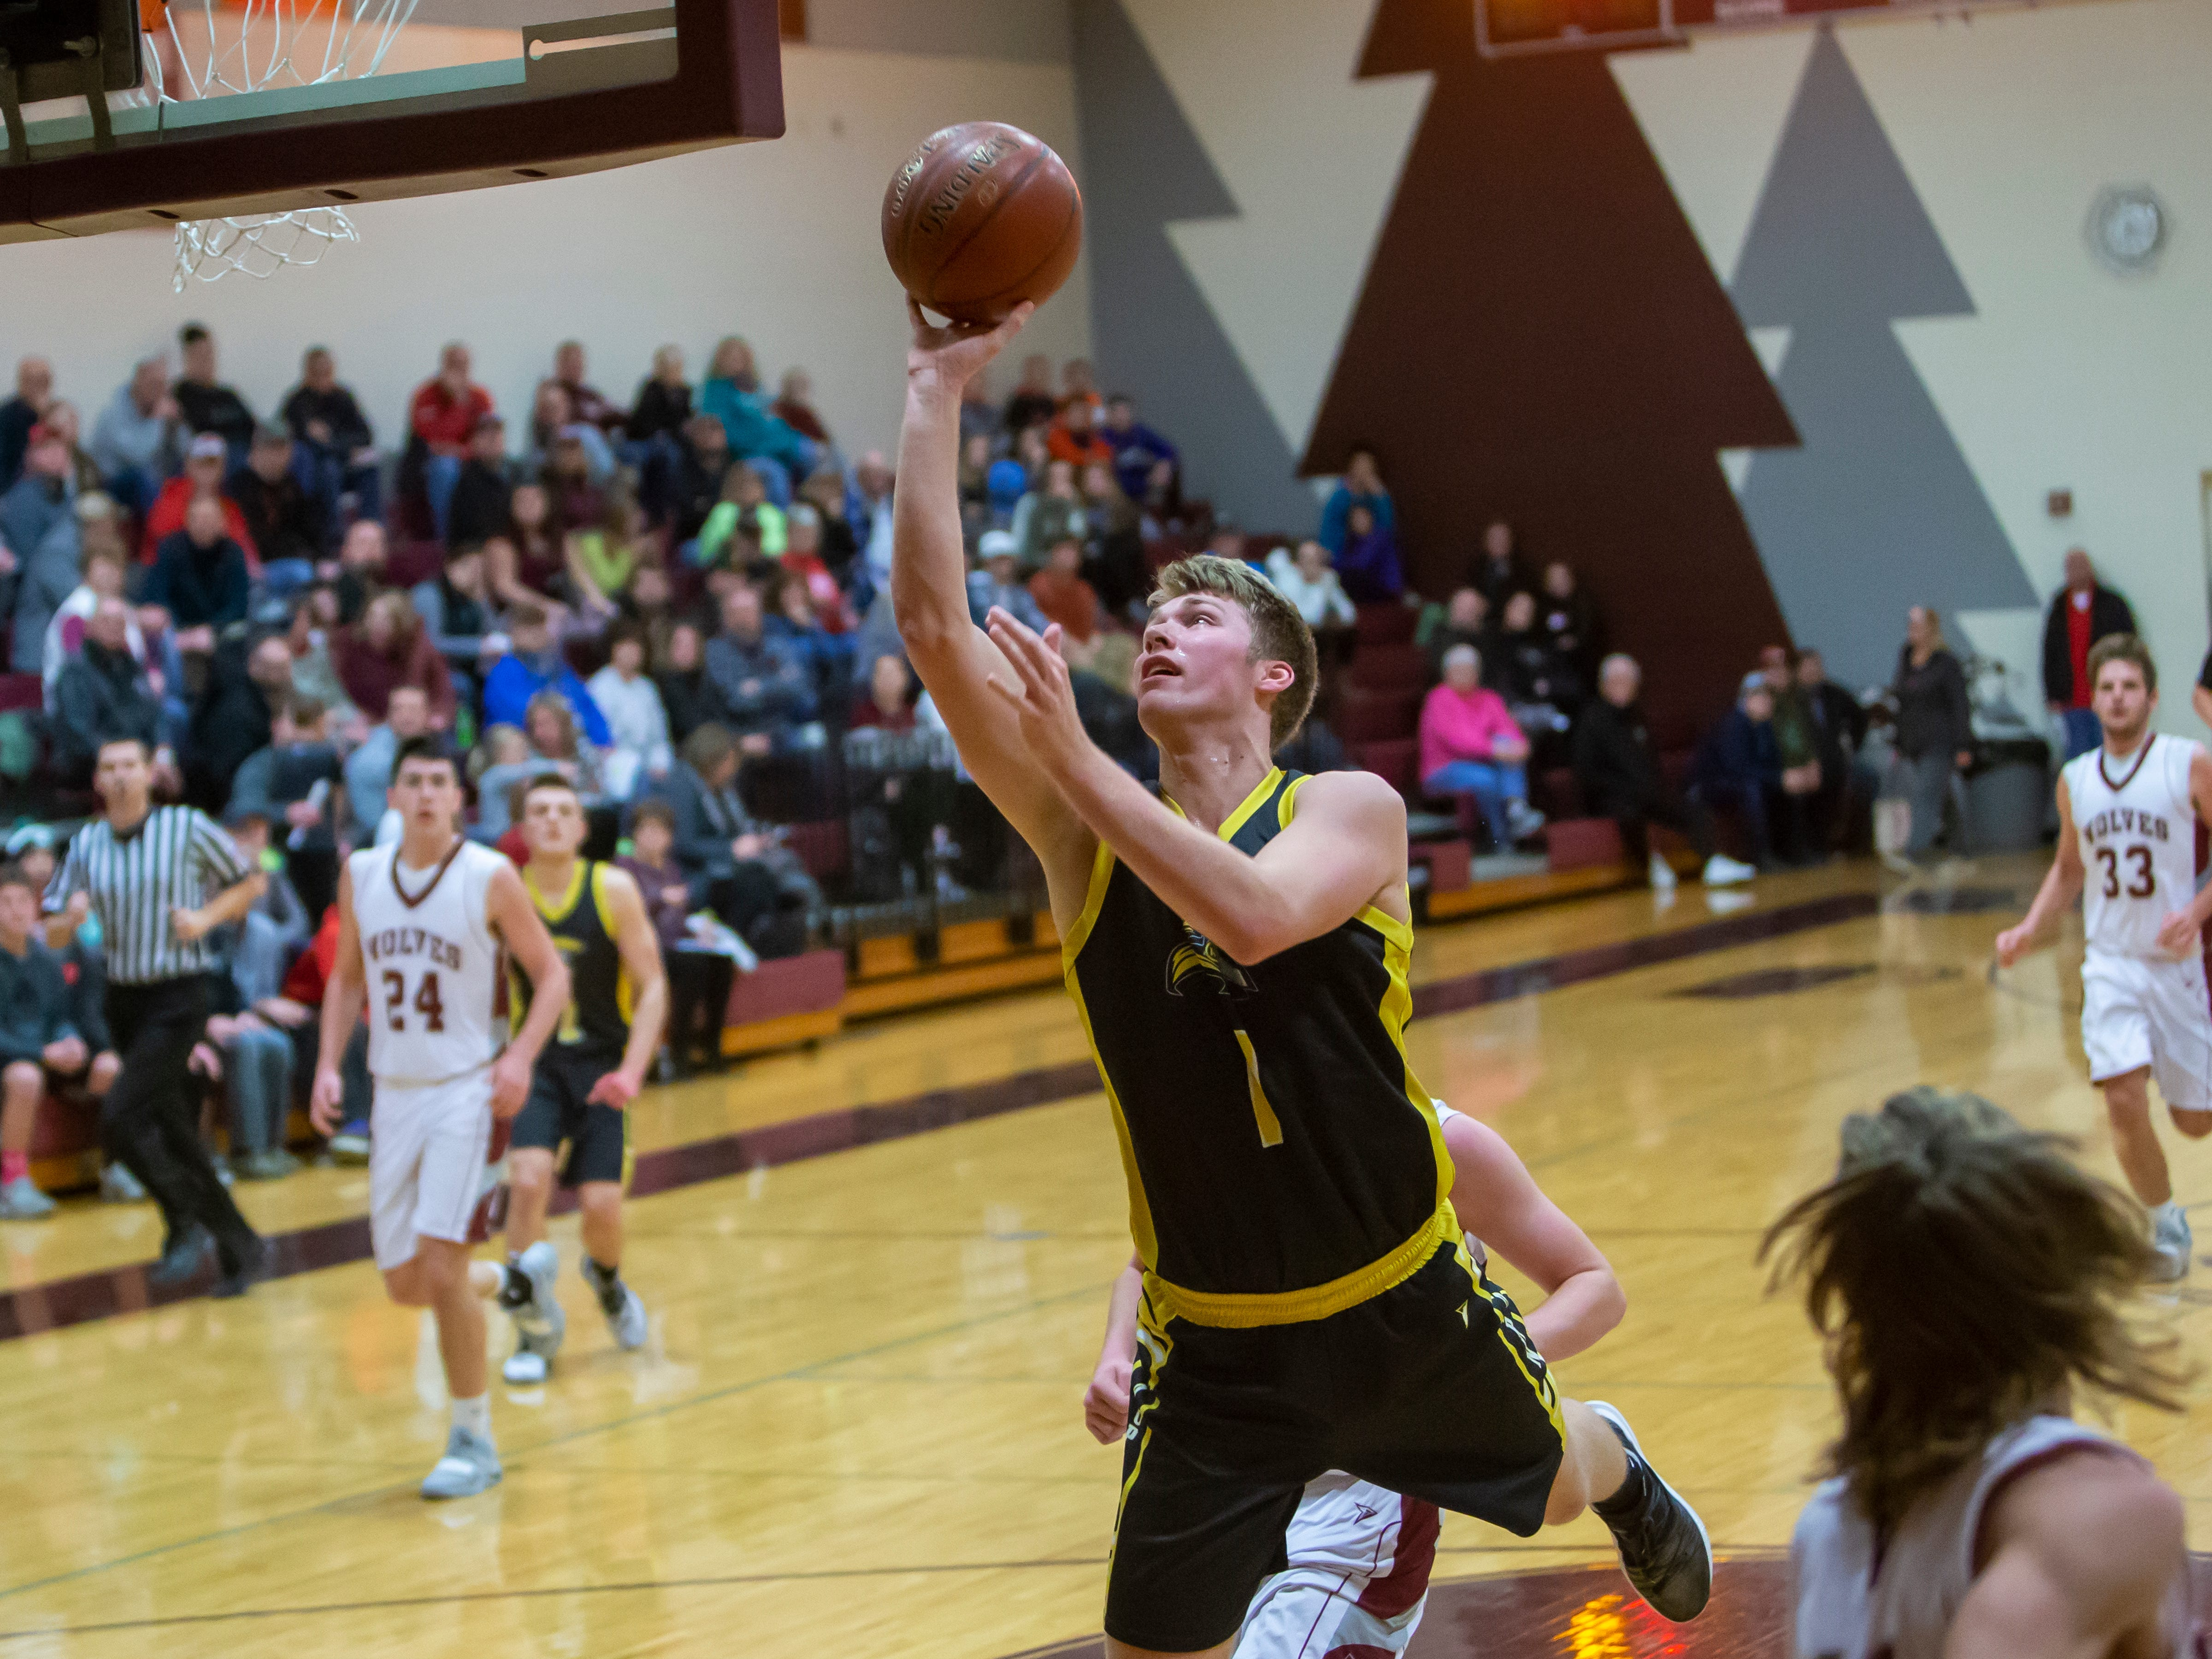 Waupun's Marcus Domask lays up a shot playing at Winneconne High School on Thursday, Dec. 20, 2018.